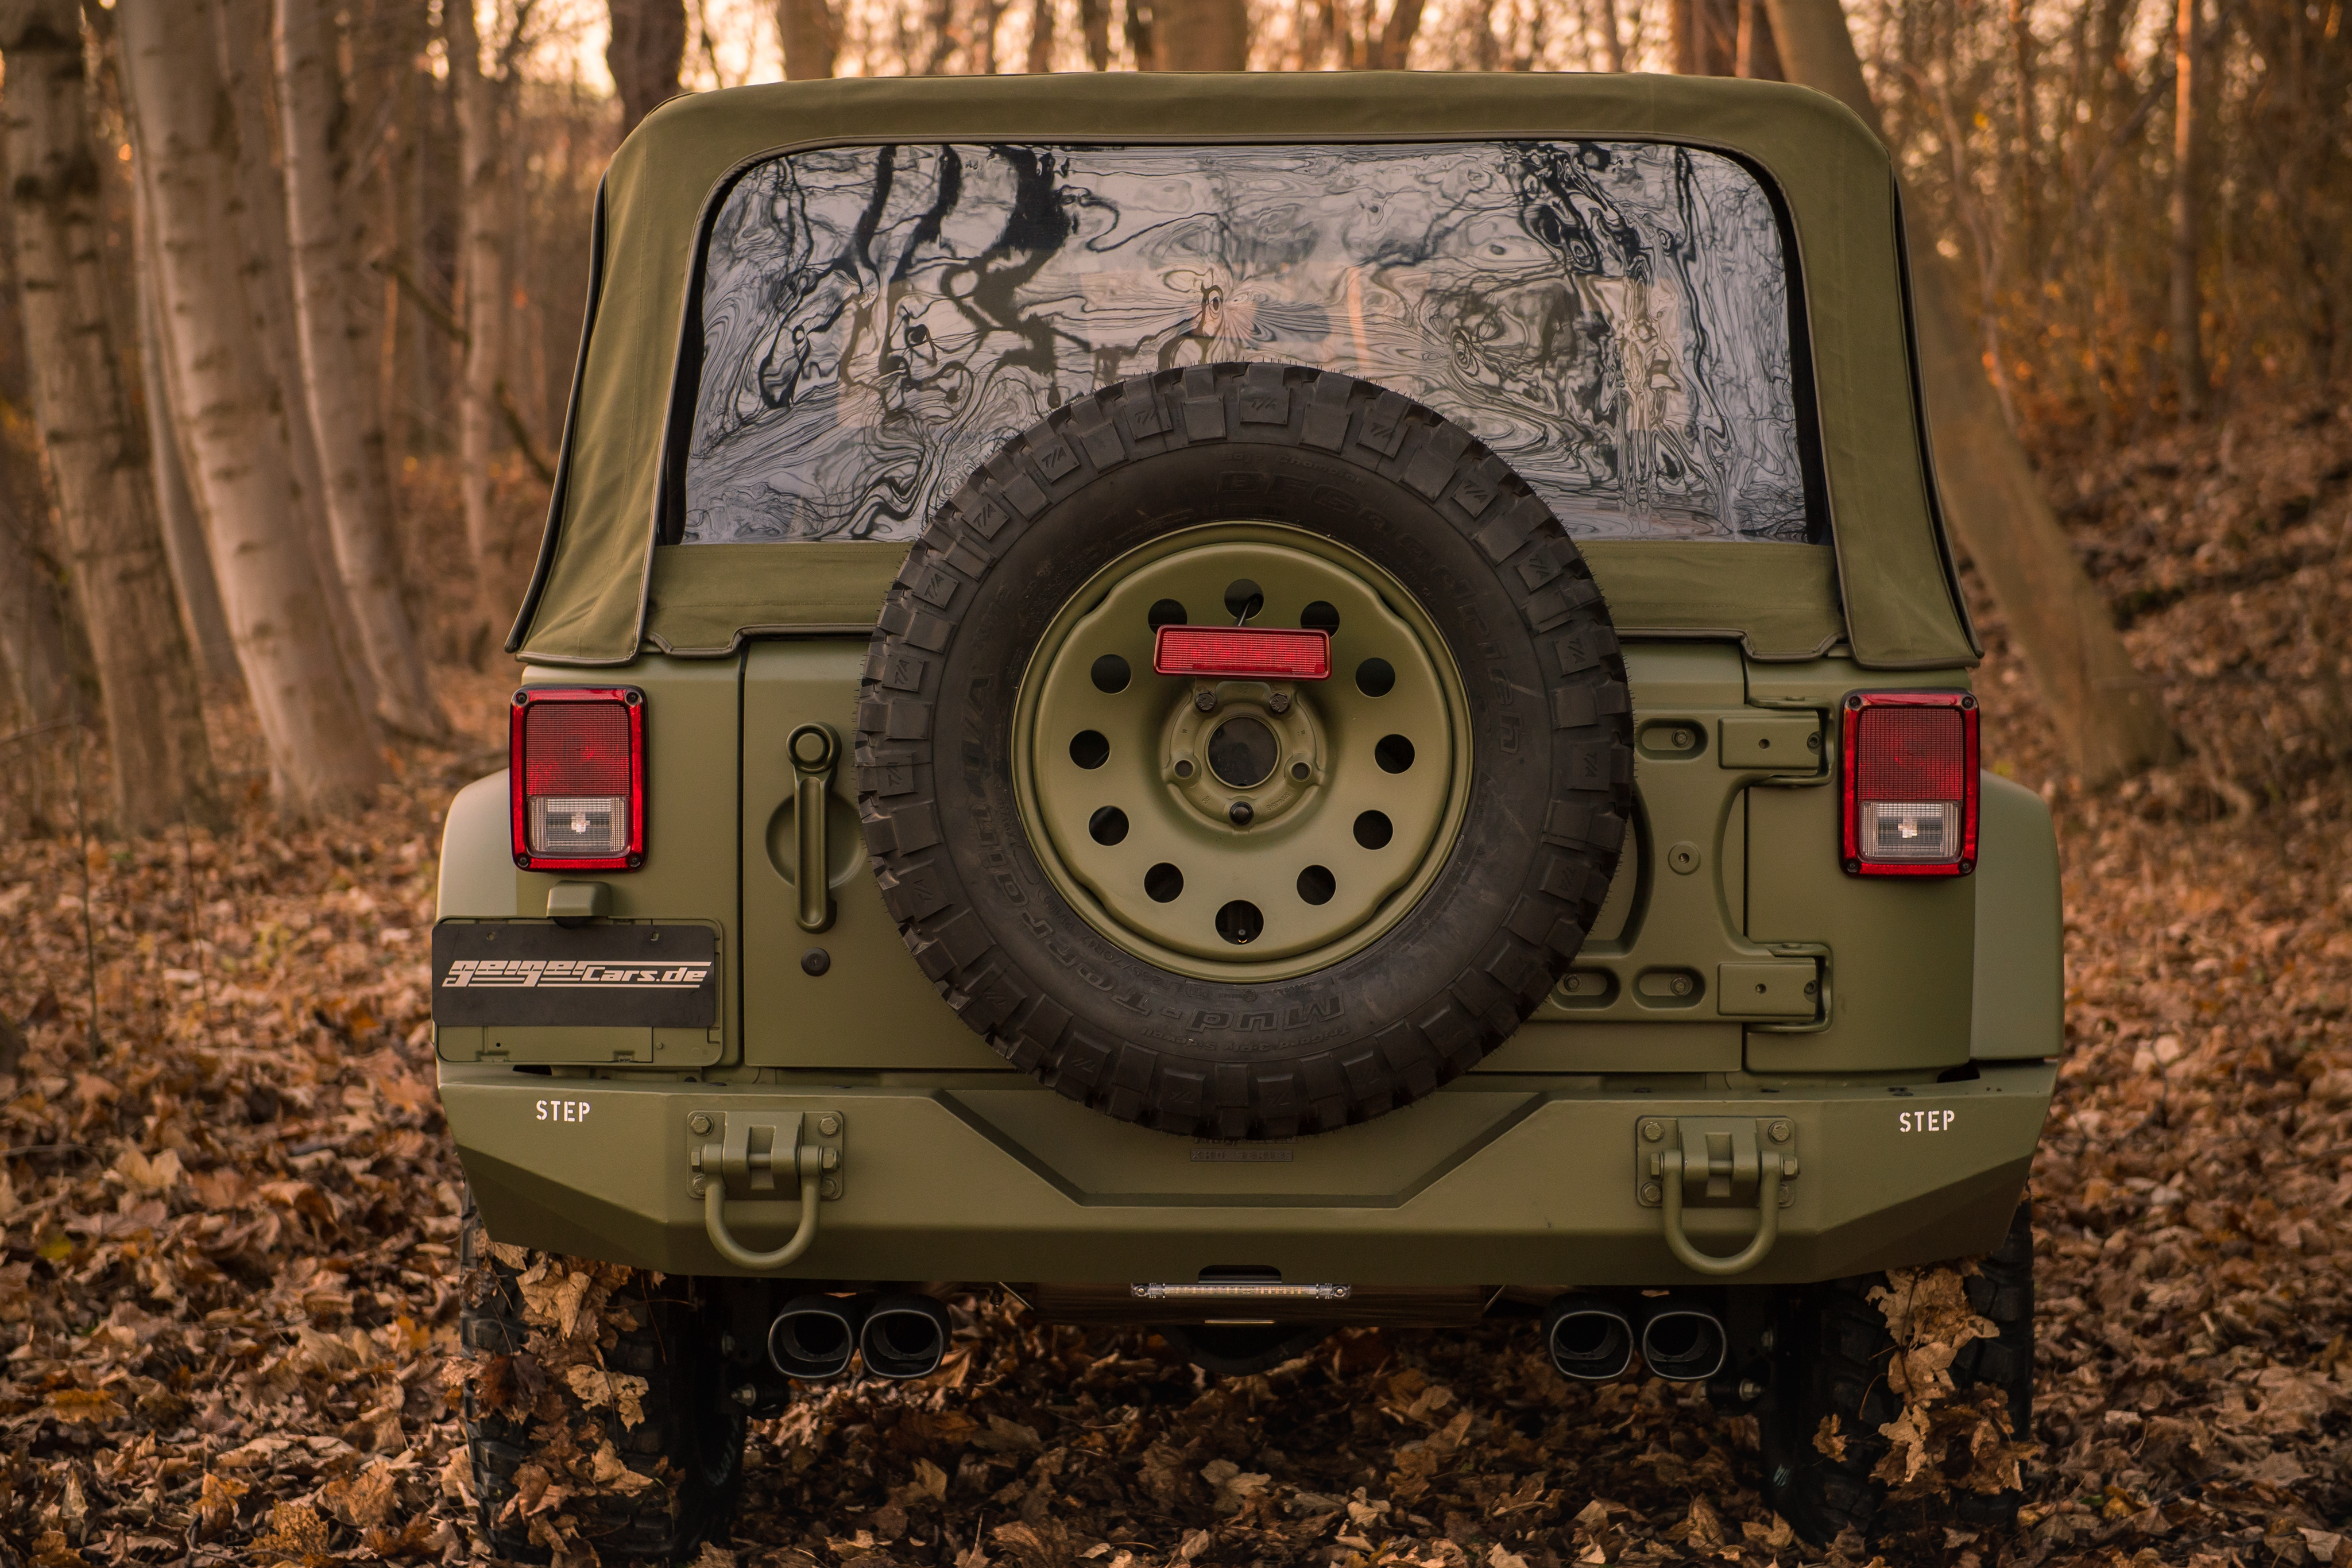 2017 jeep wrangler geiger willys jk 4x4 military tuning. Black Bedroom Furniture Sets. Home Design Ideas